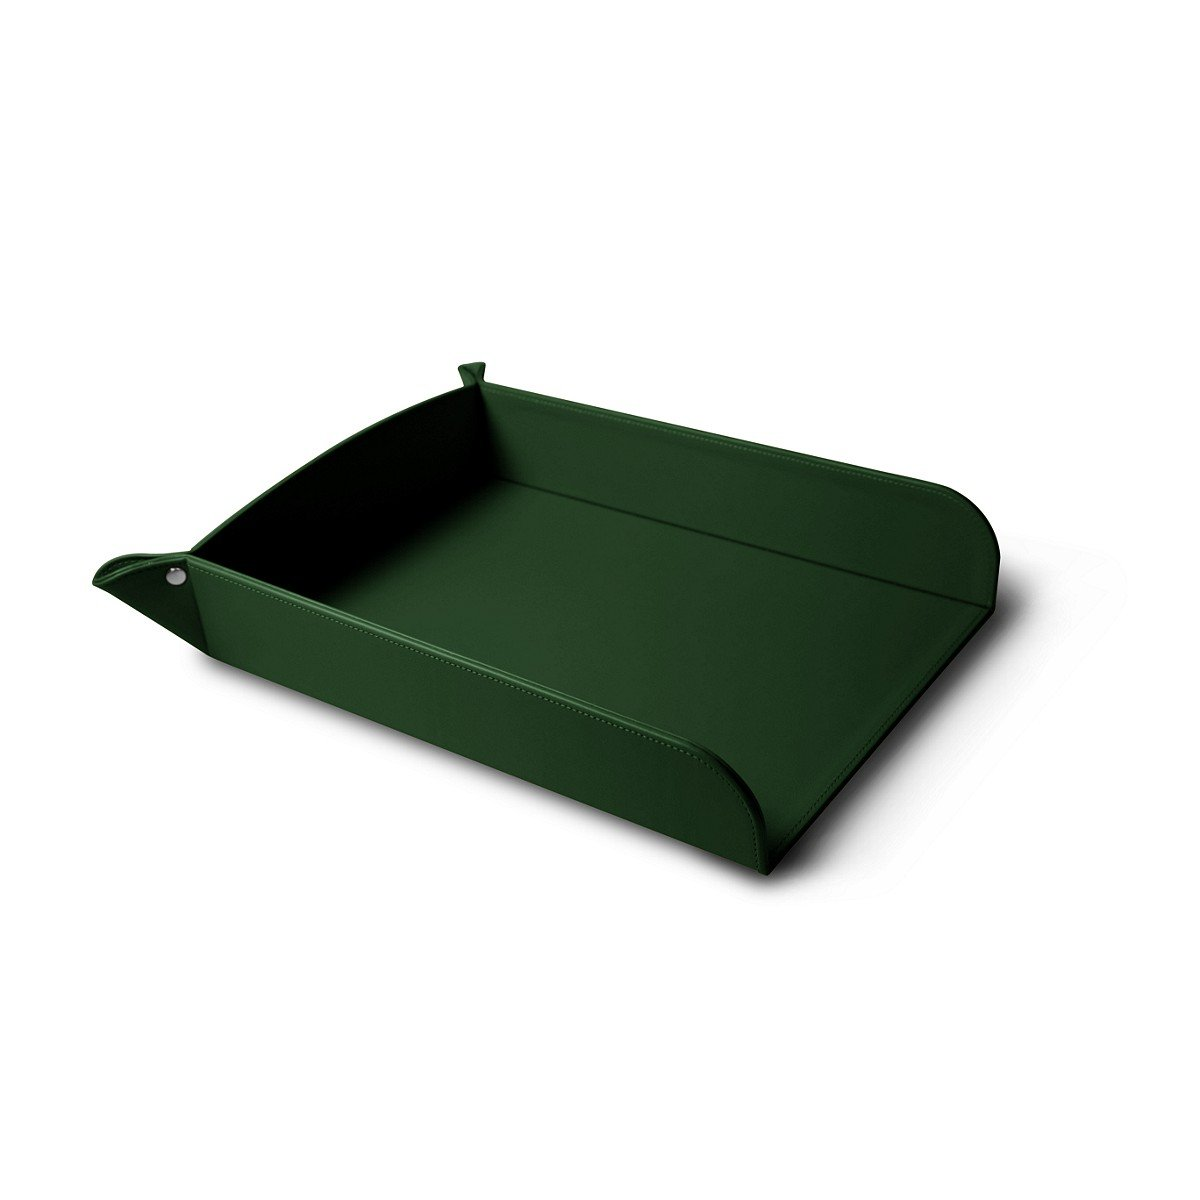 Lucrin Smooth Cow A4 Leather Paper Holder - Dark Green